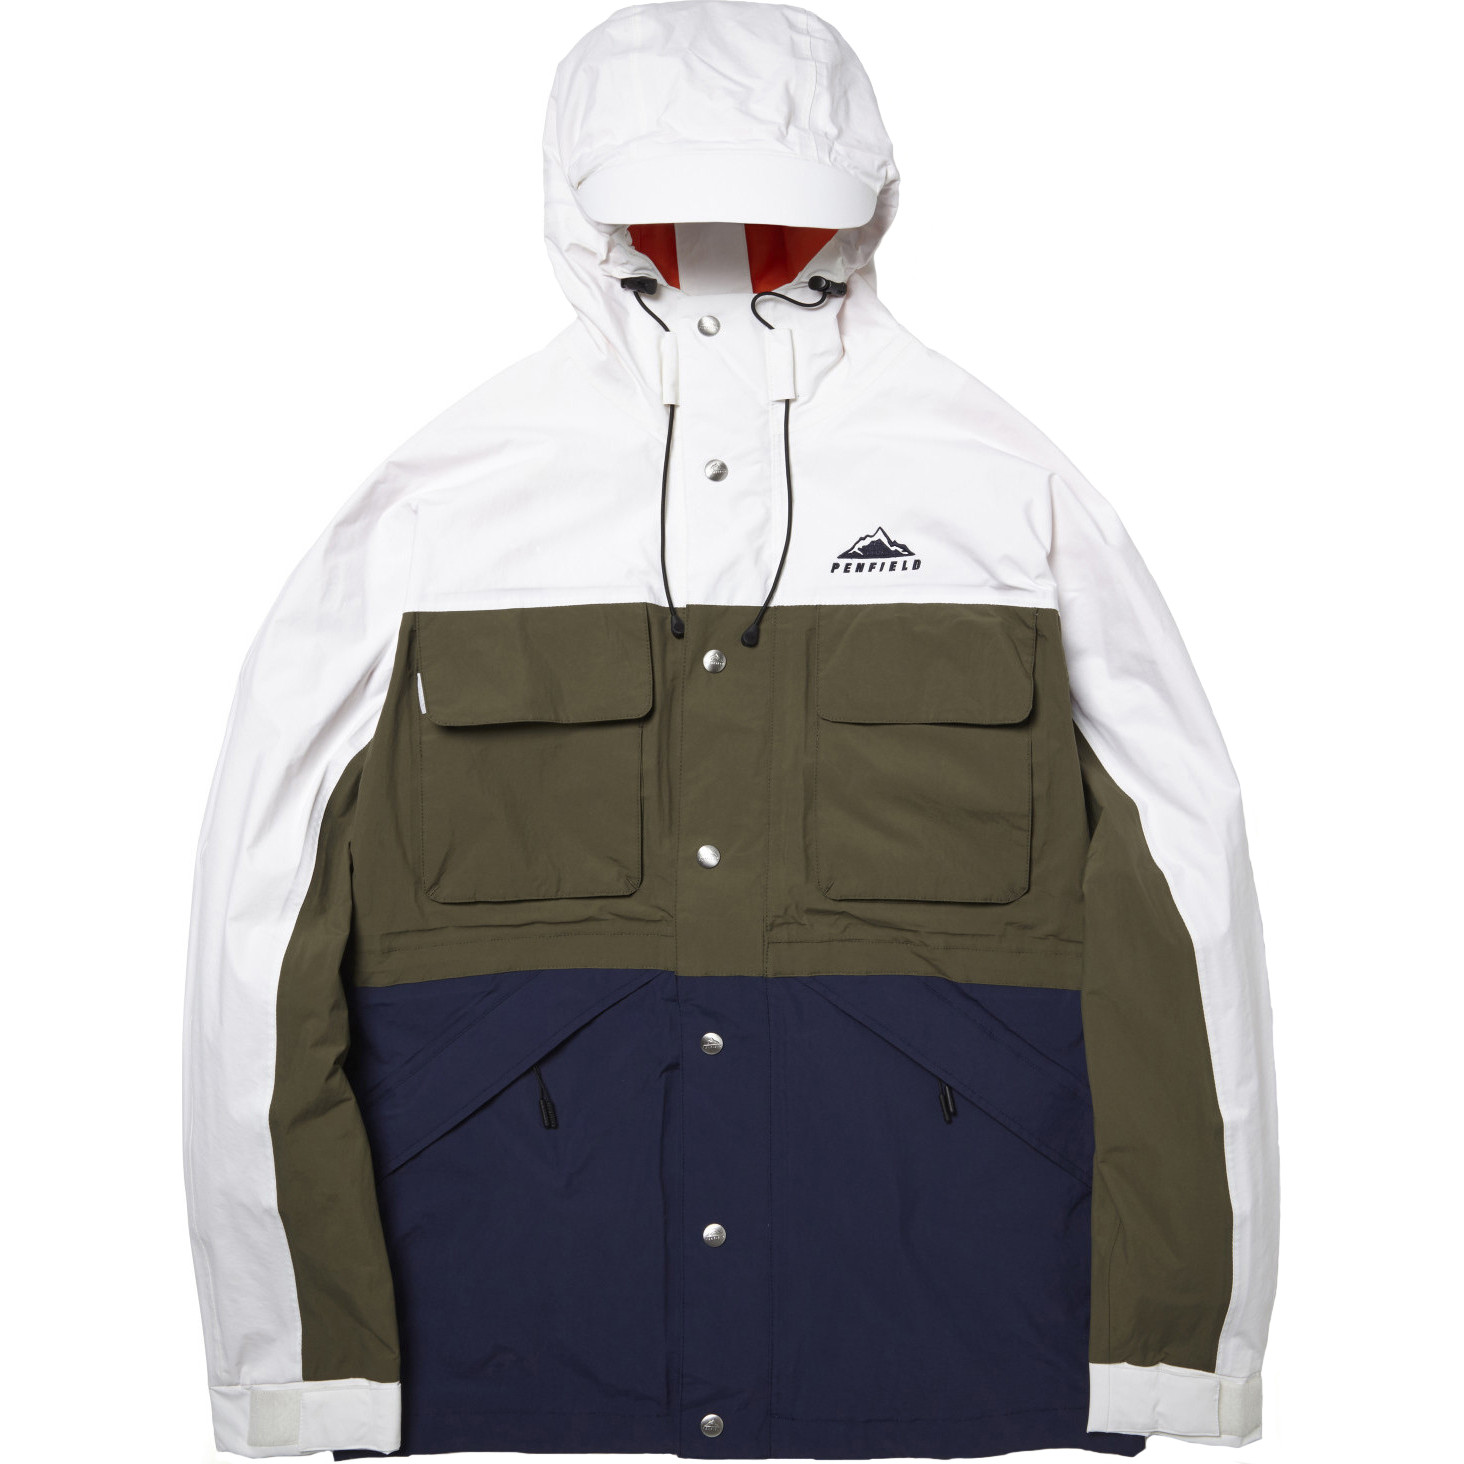 Available Available Penfield From From Blackleaf Blackleaf Penfield Penfield cF13luTKJ